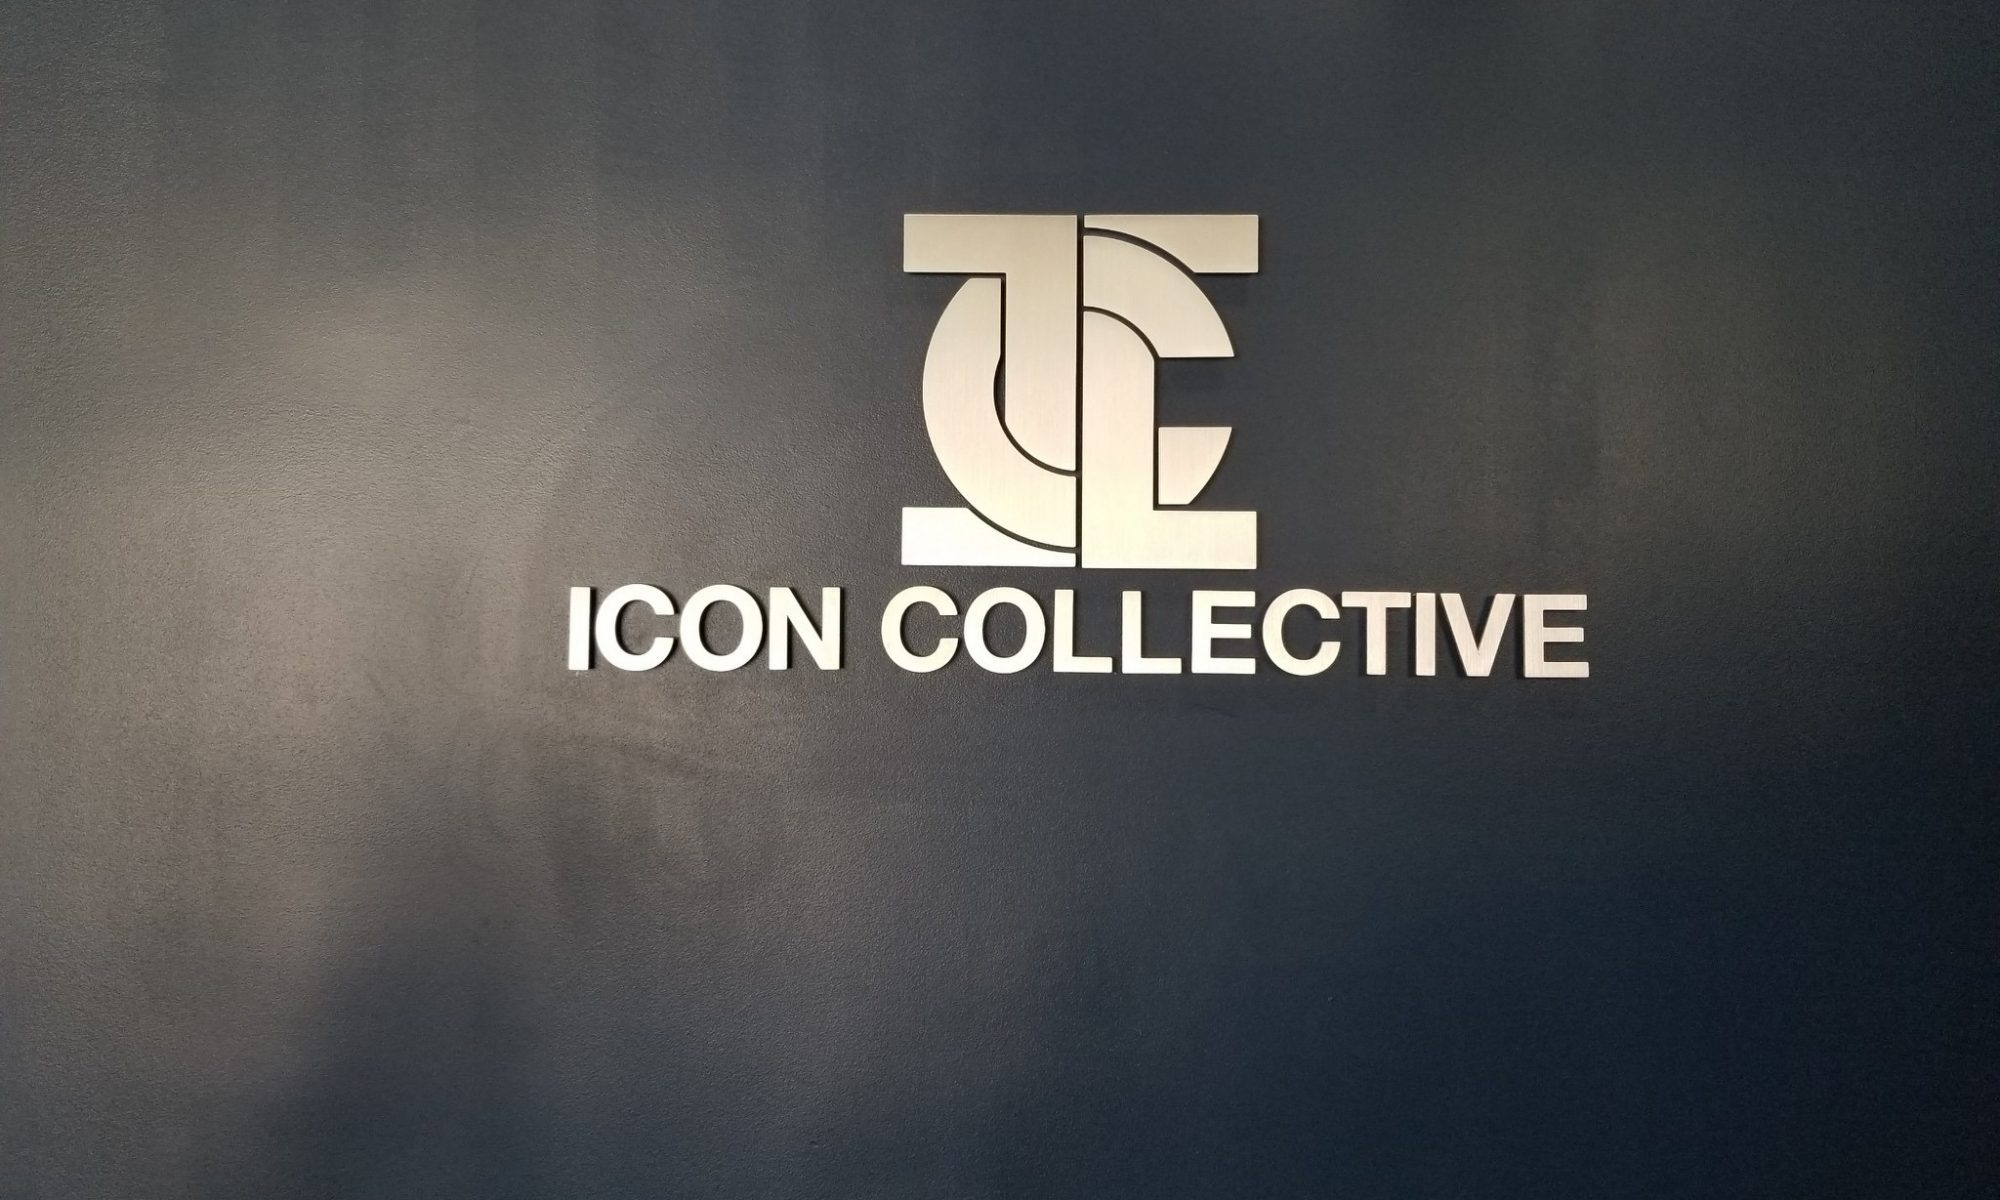 This is our metal school lobby sign for Icon Collective, part of a large outdoor and indoor business sign package we've created for the Burbank school.